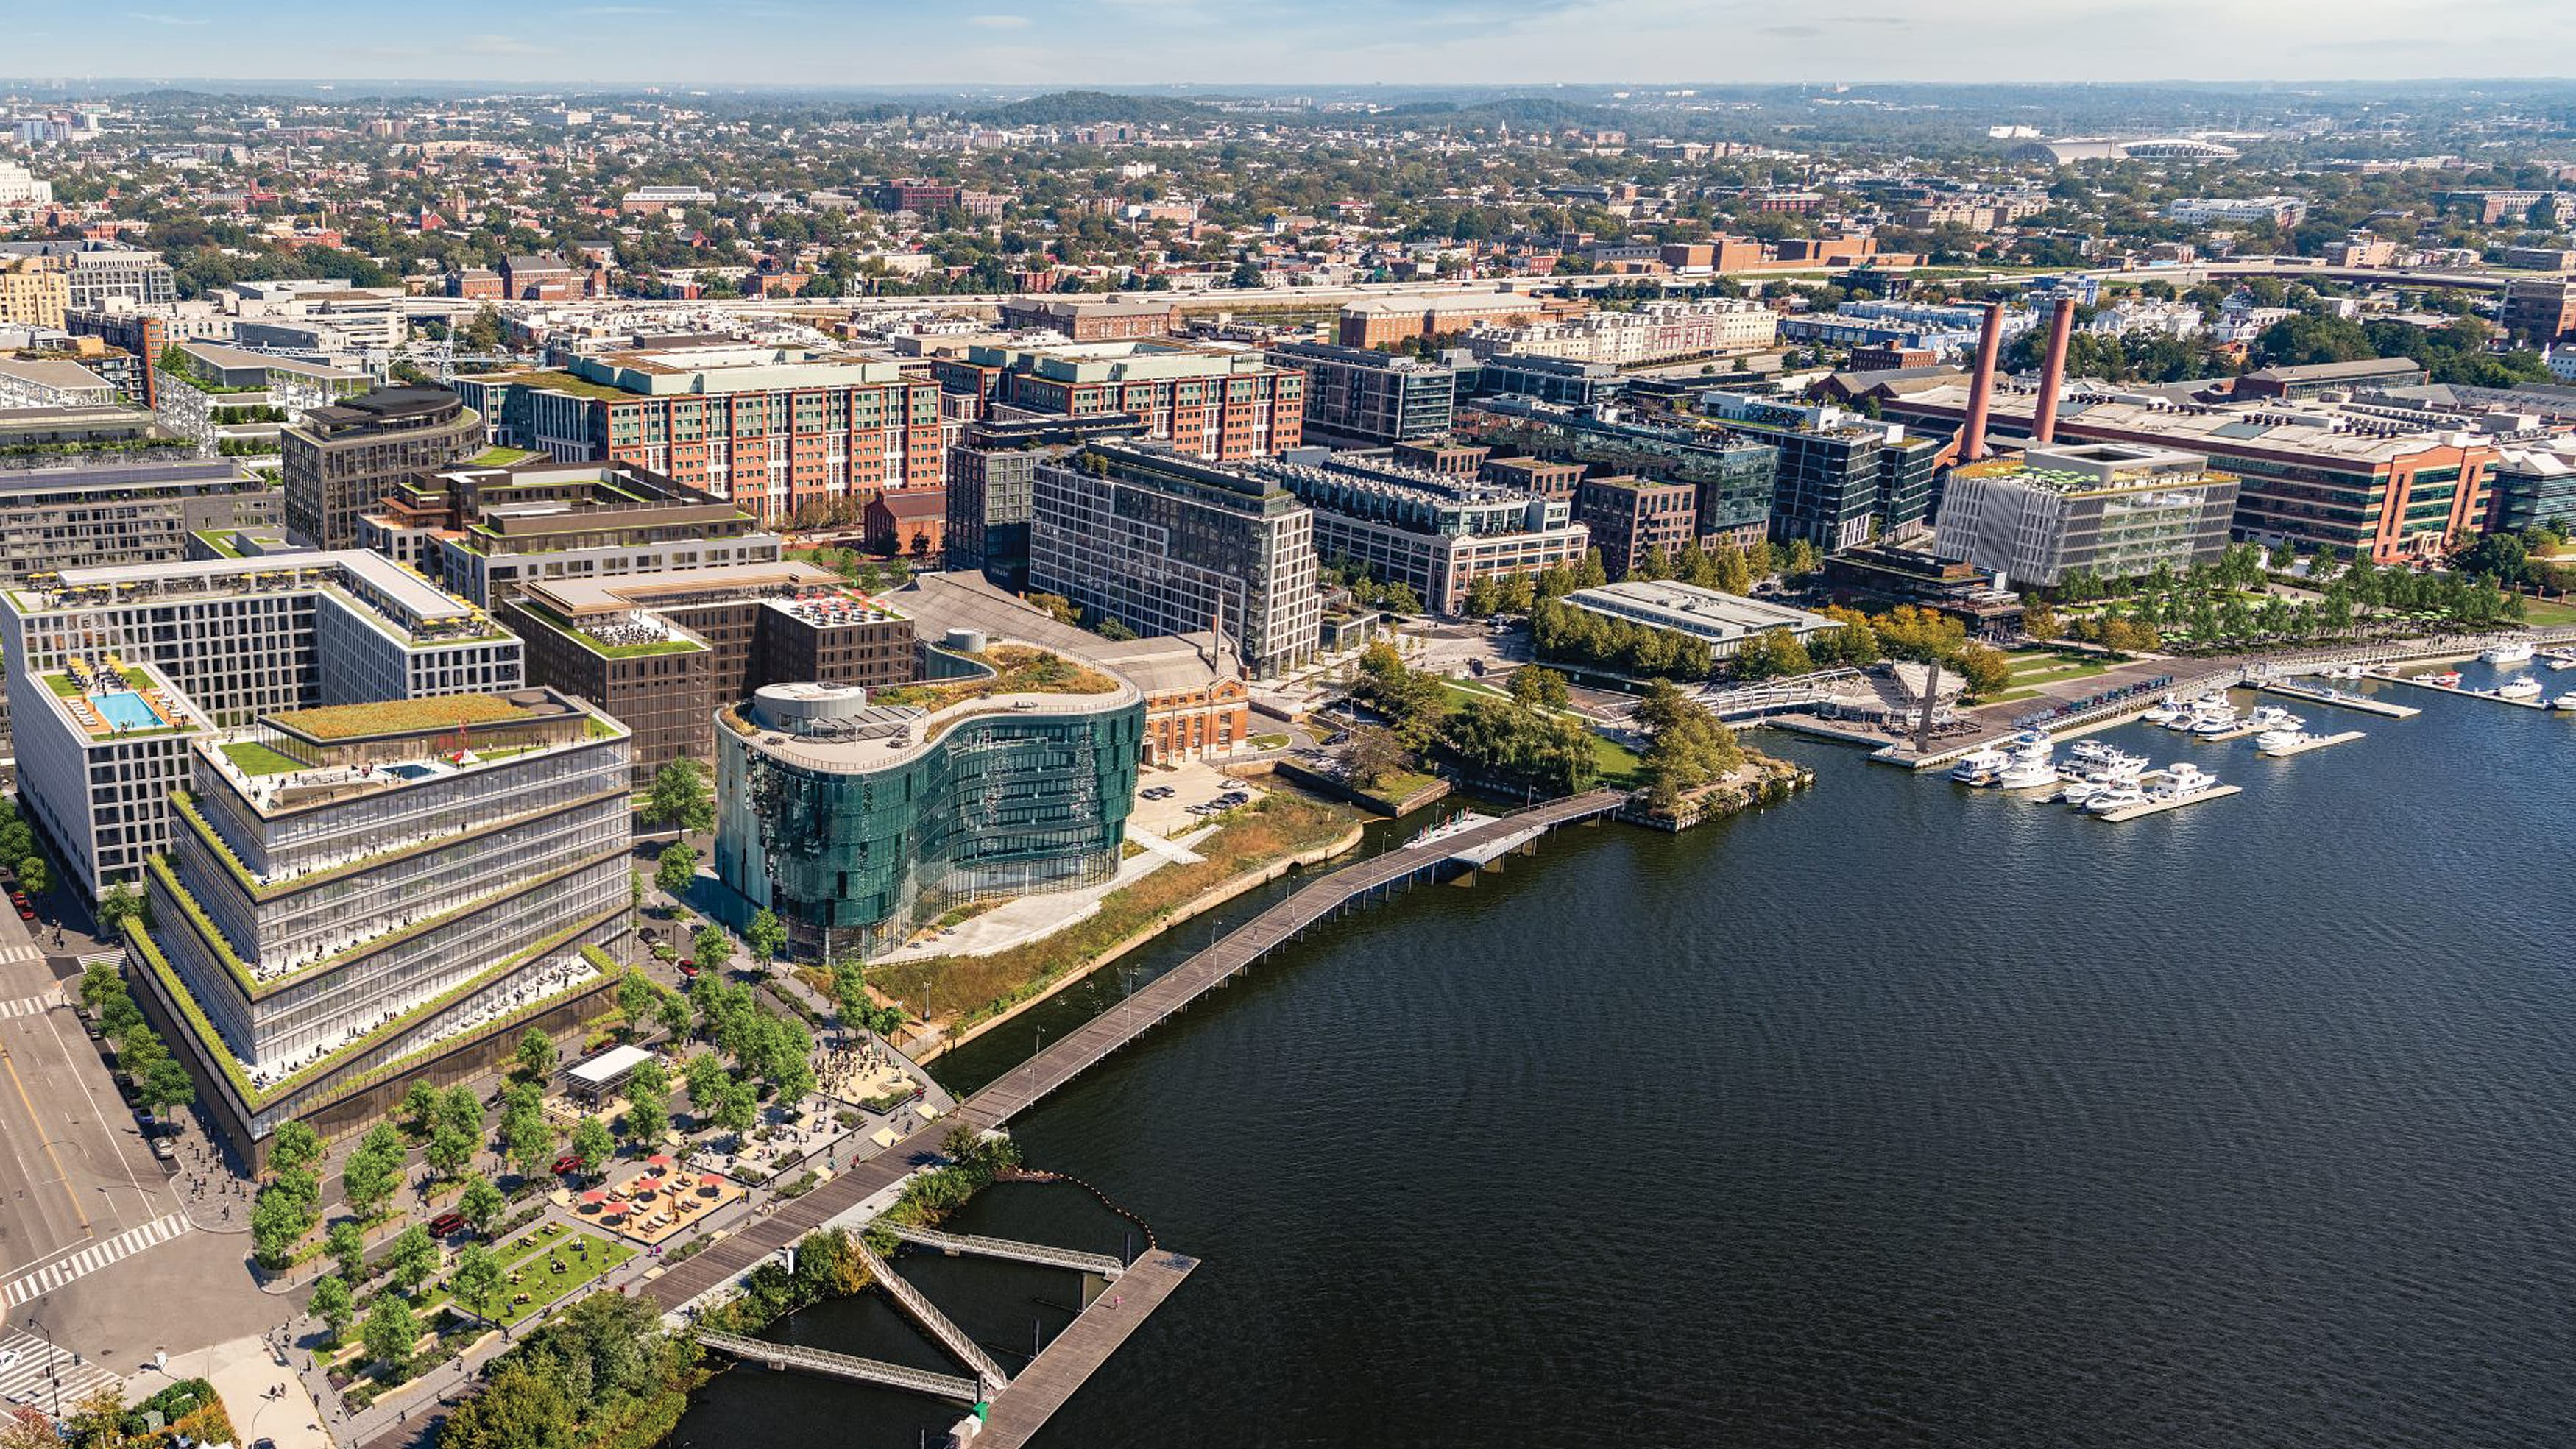 Aerial image of waterfront and city at The Yards in Washington, D.C.